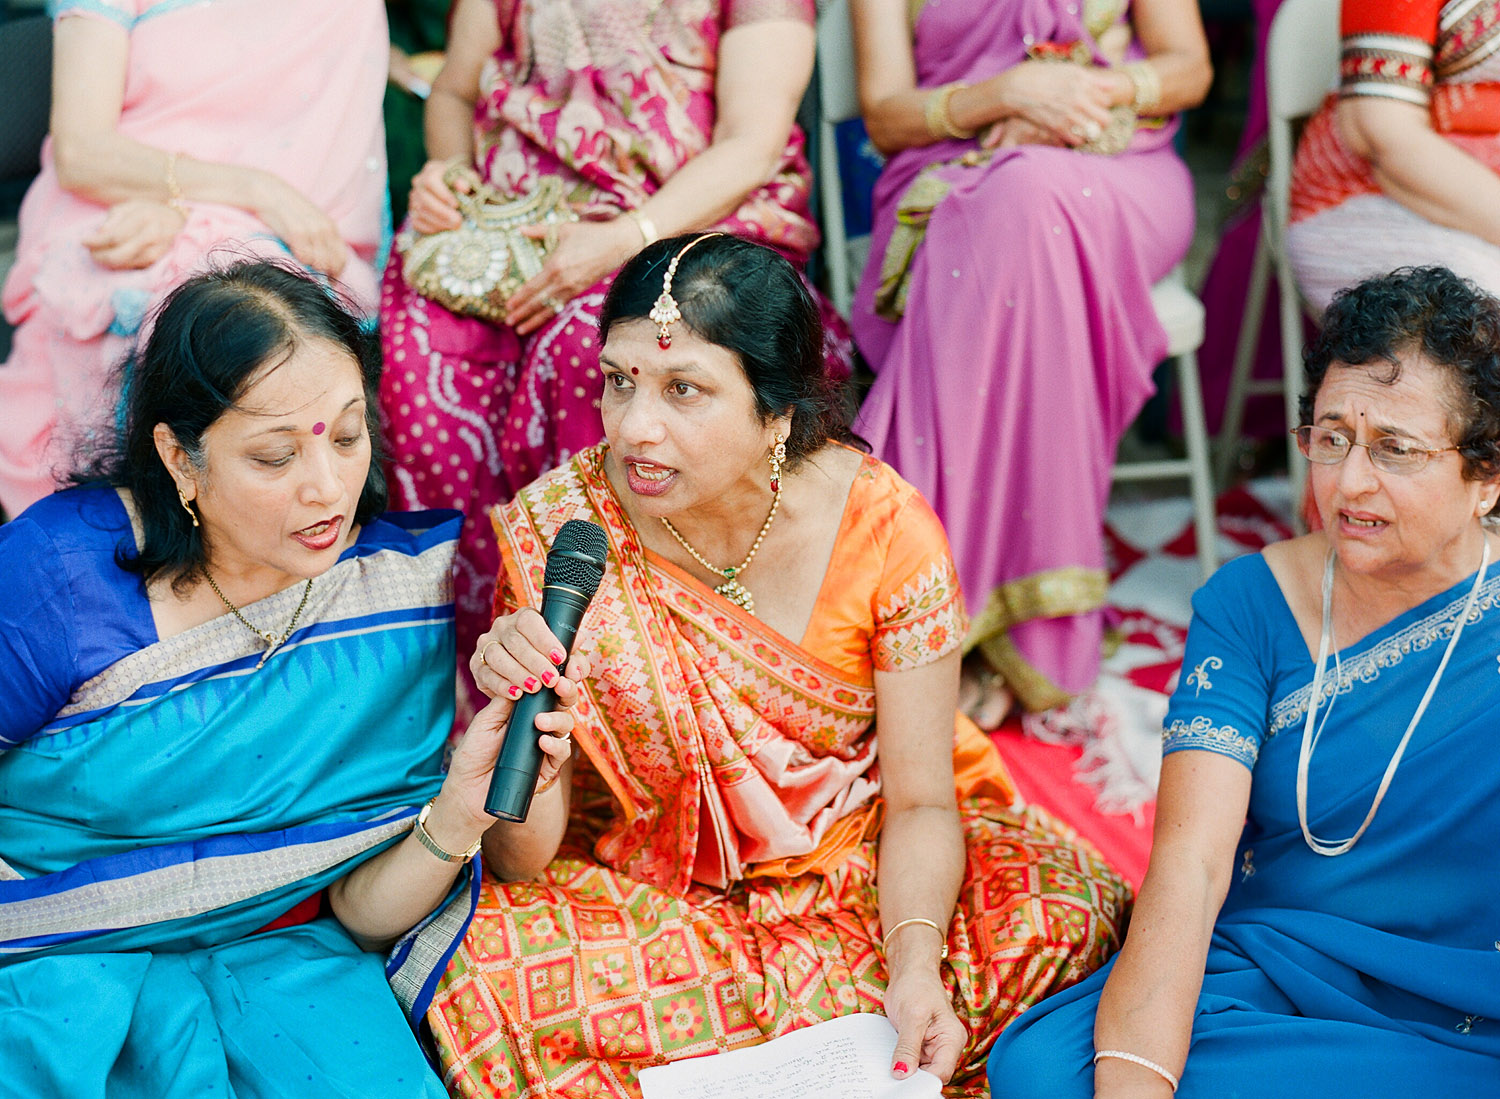 aunties sing at this hindu wedding in palm coast florida at the hammock beach resort photographed by Destination Wedding Photographer Lexia Frank, a top indian wedding photographer photographing her indian weddings on film and medium format film cameras and shooting luxury indian weddings worldwide